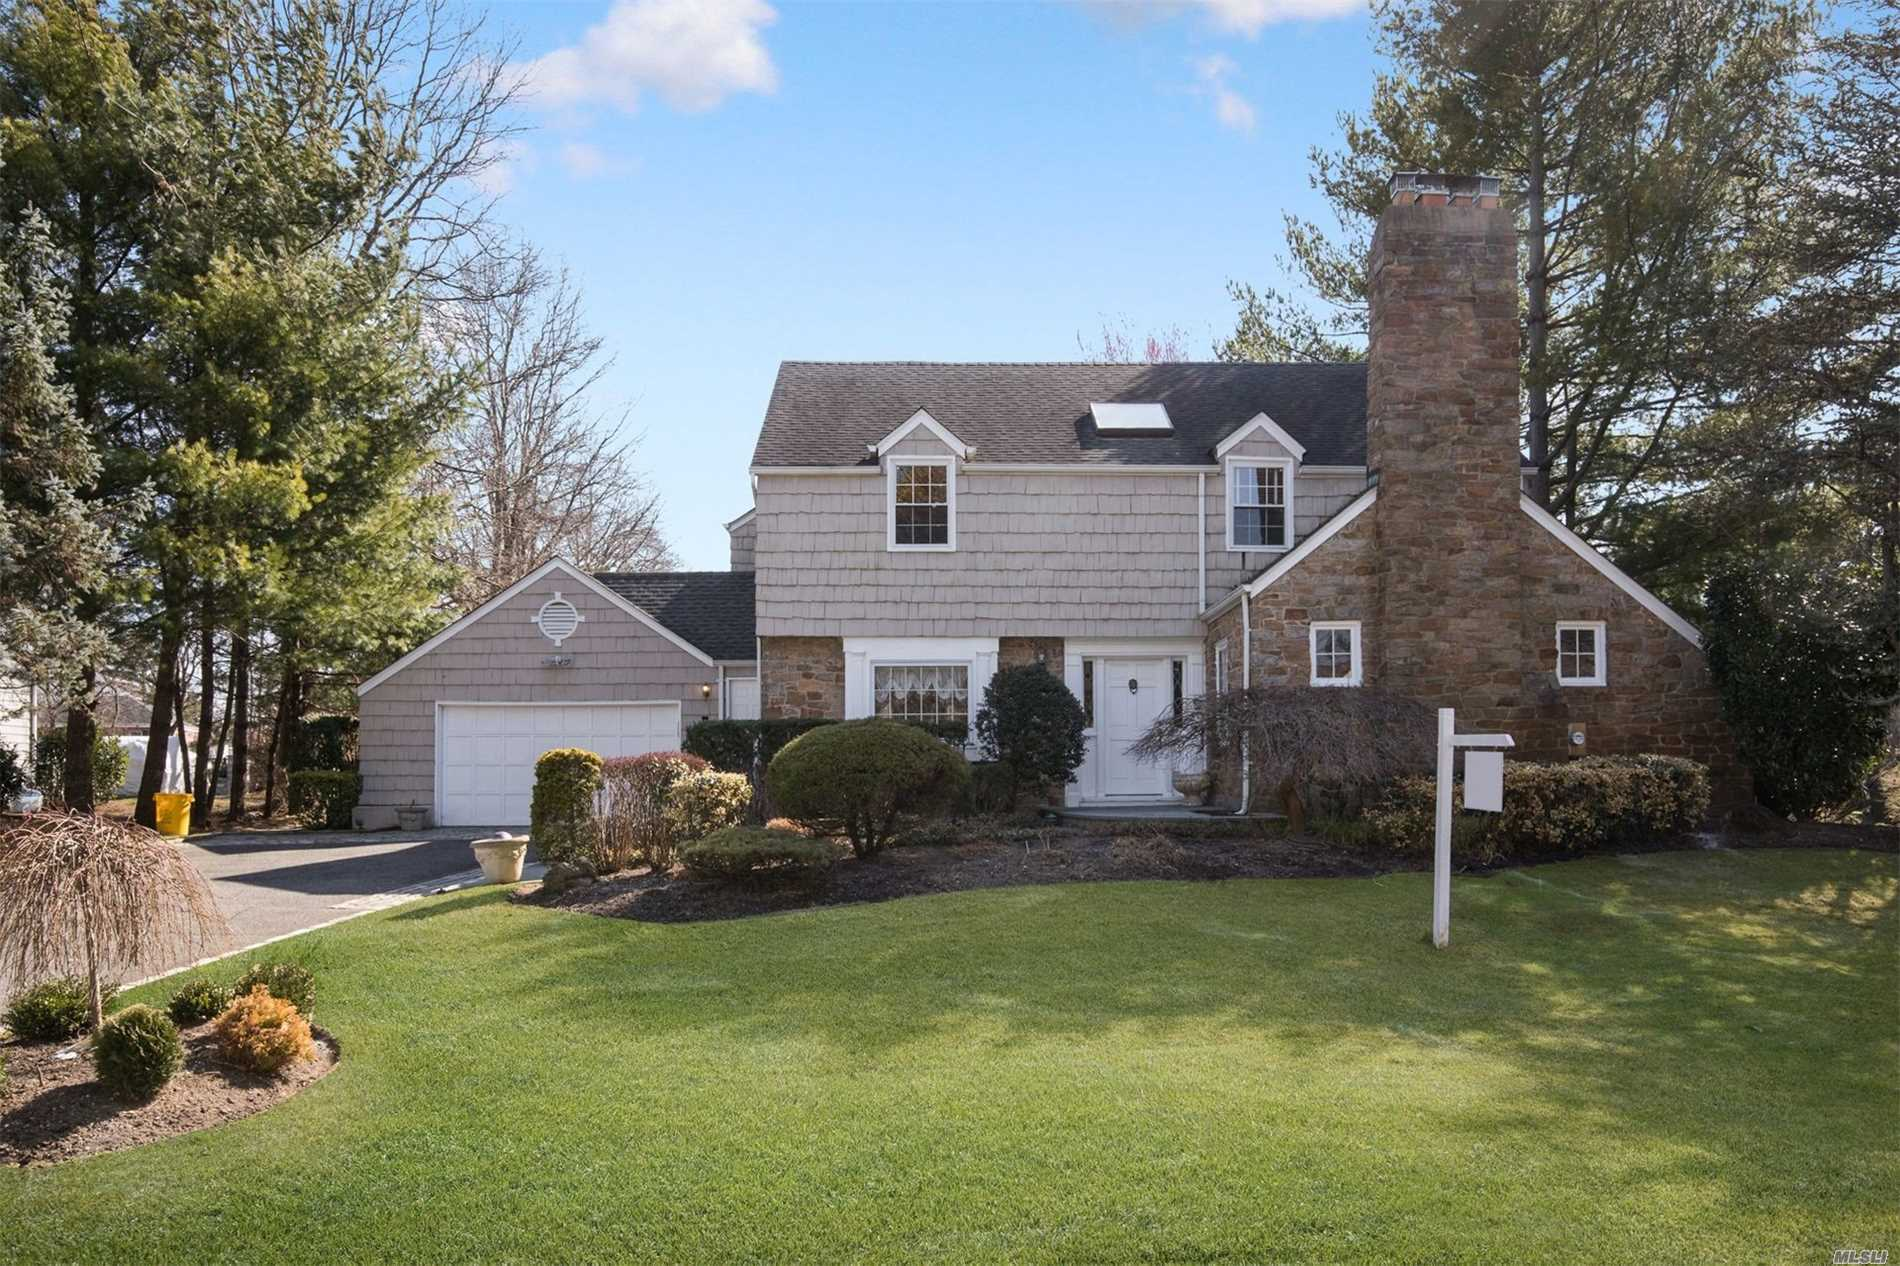 4000 SQUARE FT COLONIAL NESTLED ON .61 PARK LIKE ACRES IN SCHOOL DISTRICT 14. BOASTS A FORMAL LIVING ROOM WITH FPL, FORMAL DINING ROOM, OVERSIZED OPEN LAYOUT KITCHEN WITH BREAKFAST AREA AND OVERSIZED FAMILY ROOM. FULL FINISHED BASEMENT 5 BEDROOMS, 3.5 BATHS EN-SUITE MASTER ALL SYSYTEMS!!